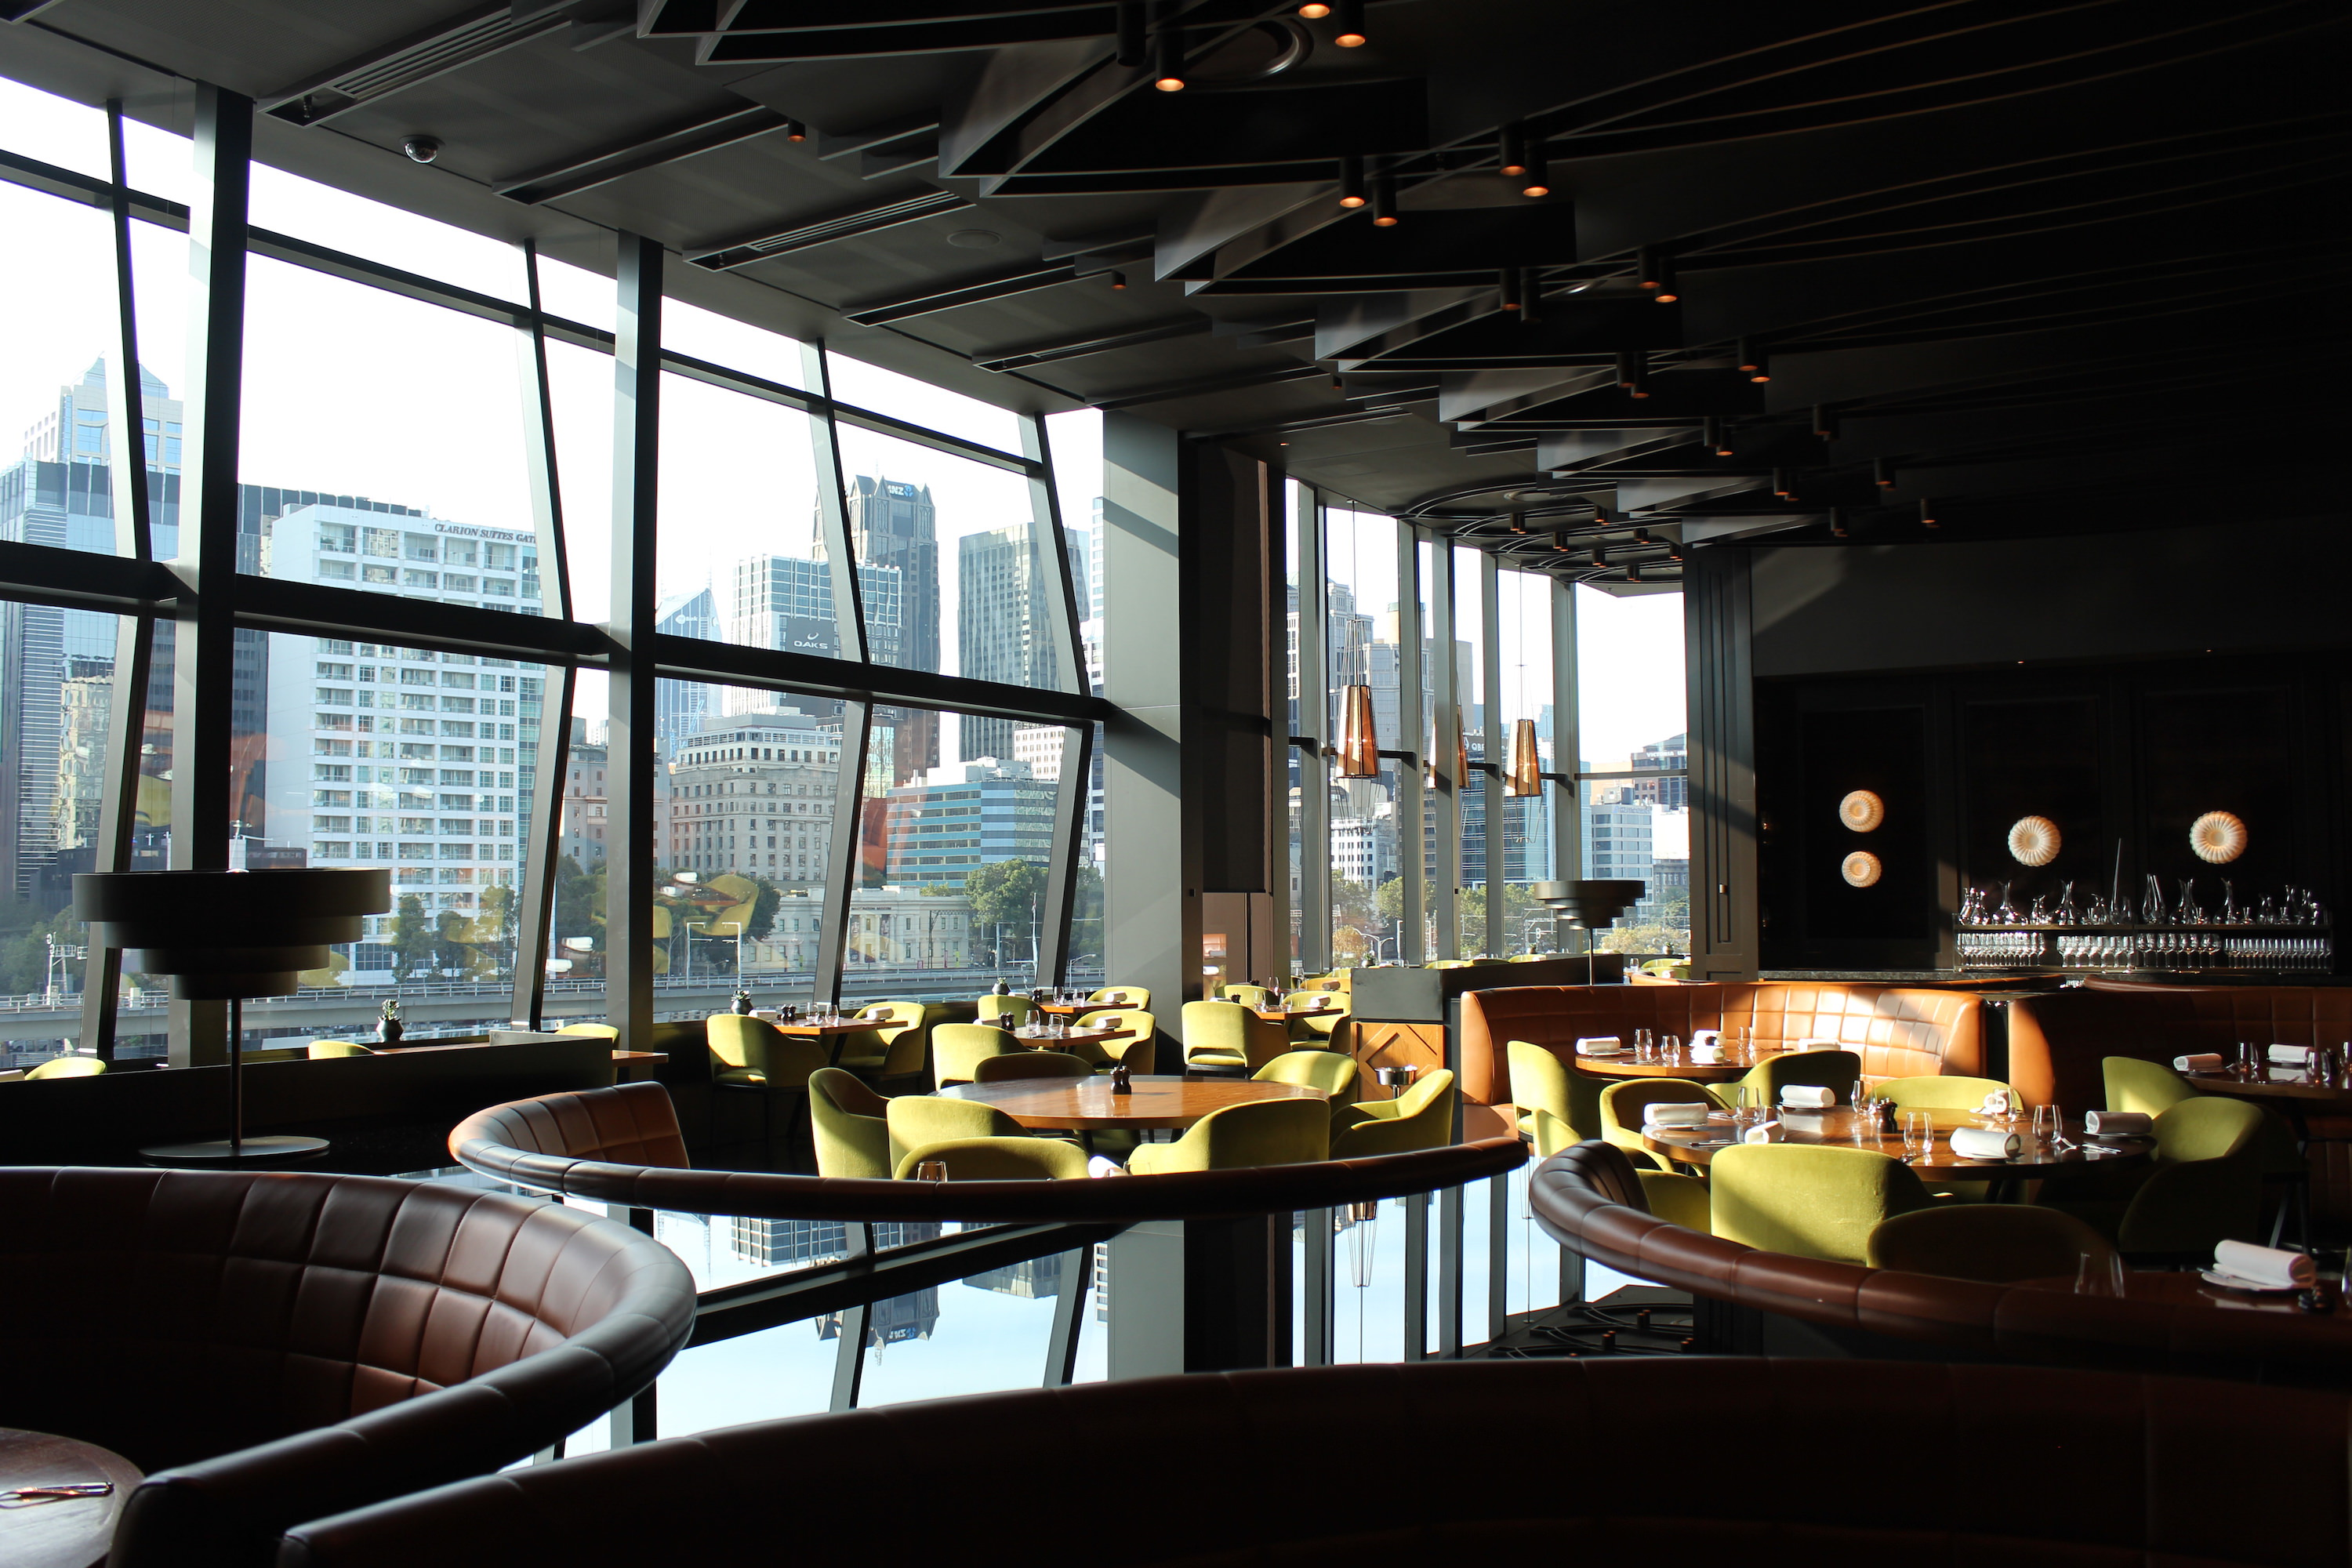 Dinner by Heston Blumenthal interior